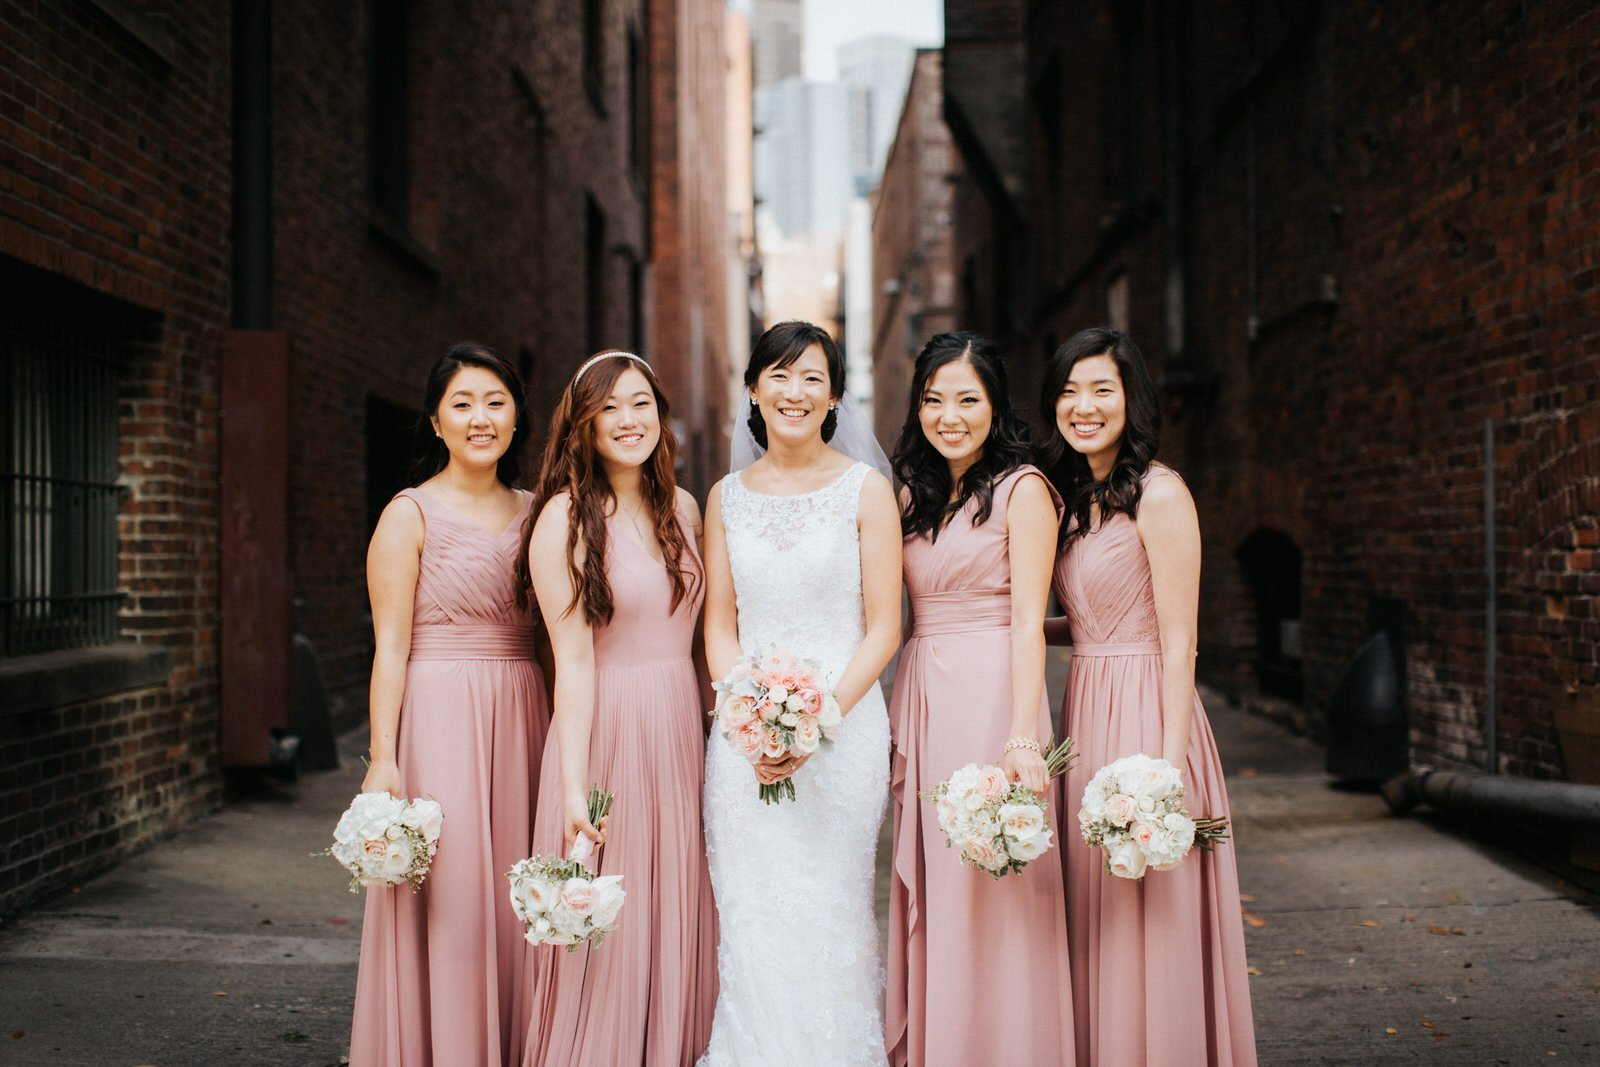 The bridesmaids pose during photos at pioneer square